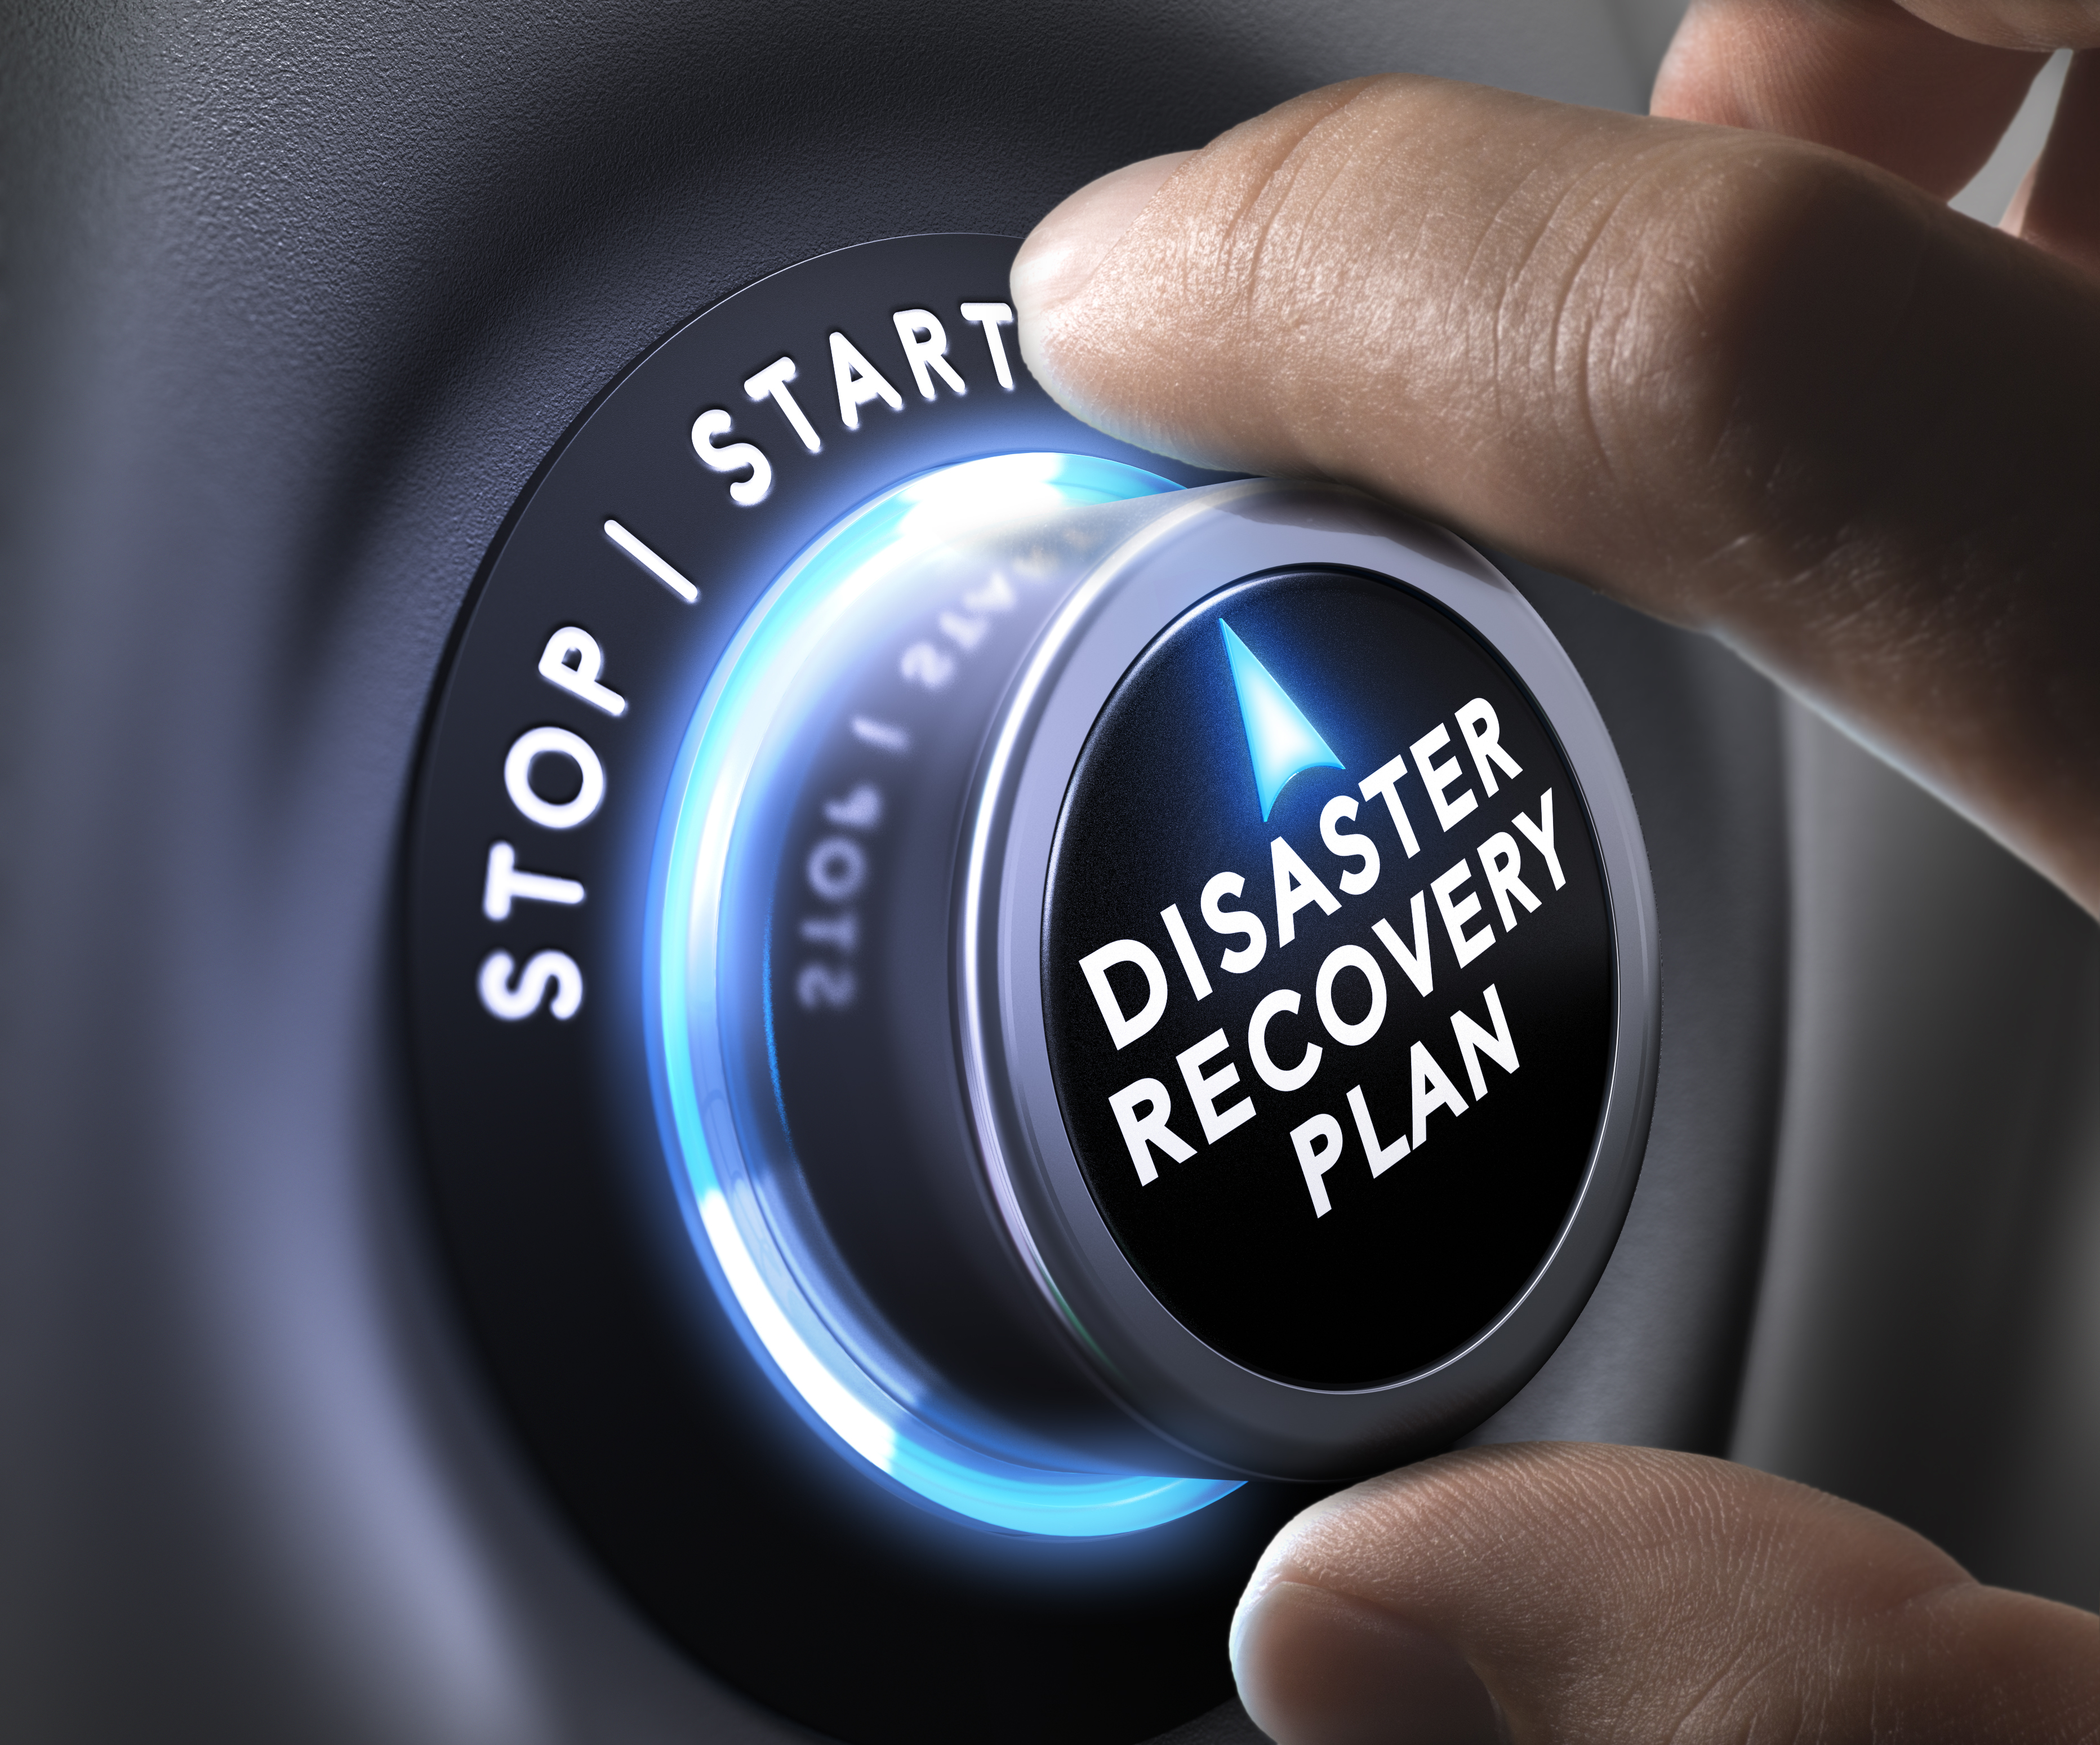 A Disaster Recovery Plan and Emergency planning is a must for all businesses, irrespective of size, location and sector.